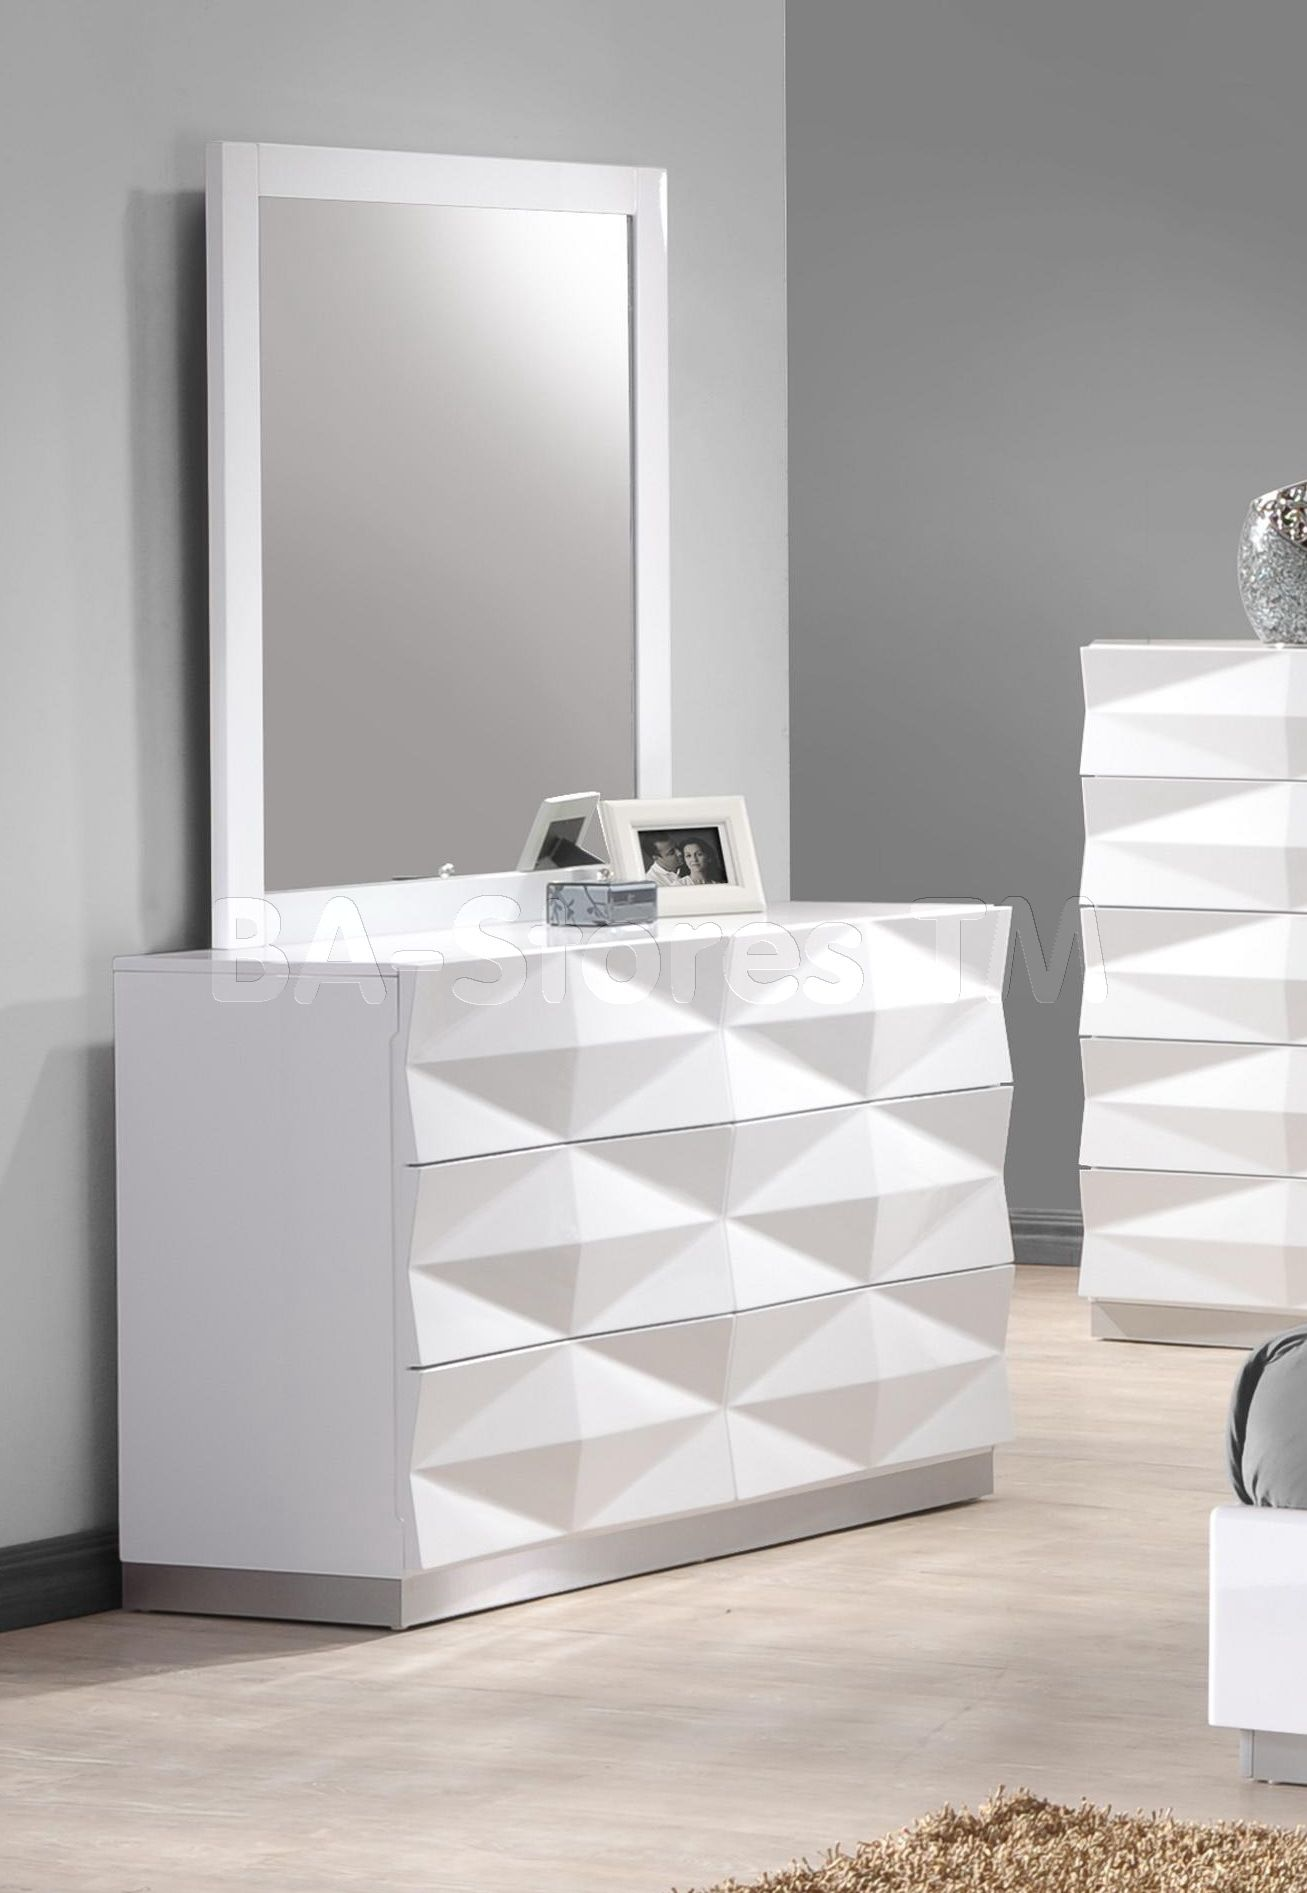 Verona Unique 3D Surfaces Dresser and Mirror in White Lacquered. Verona Unique 3D Surfaces Dresser and Mirror in White Lacquered